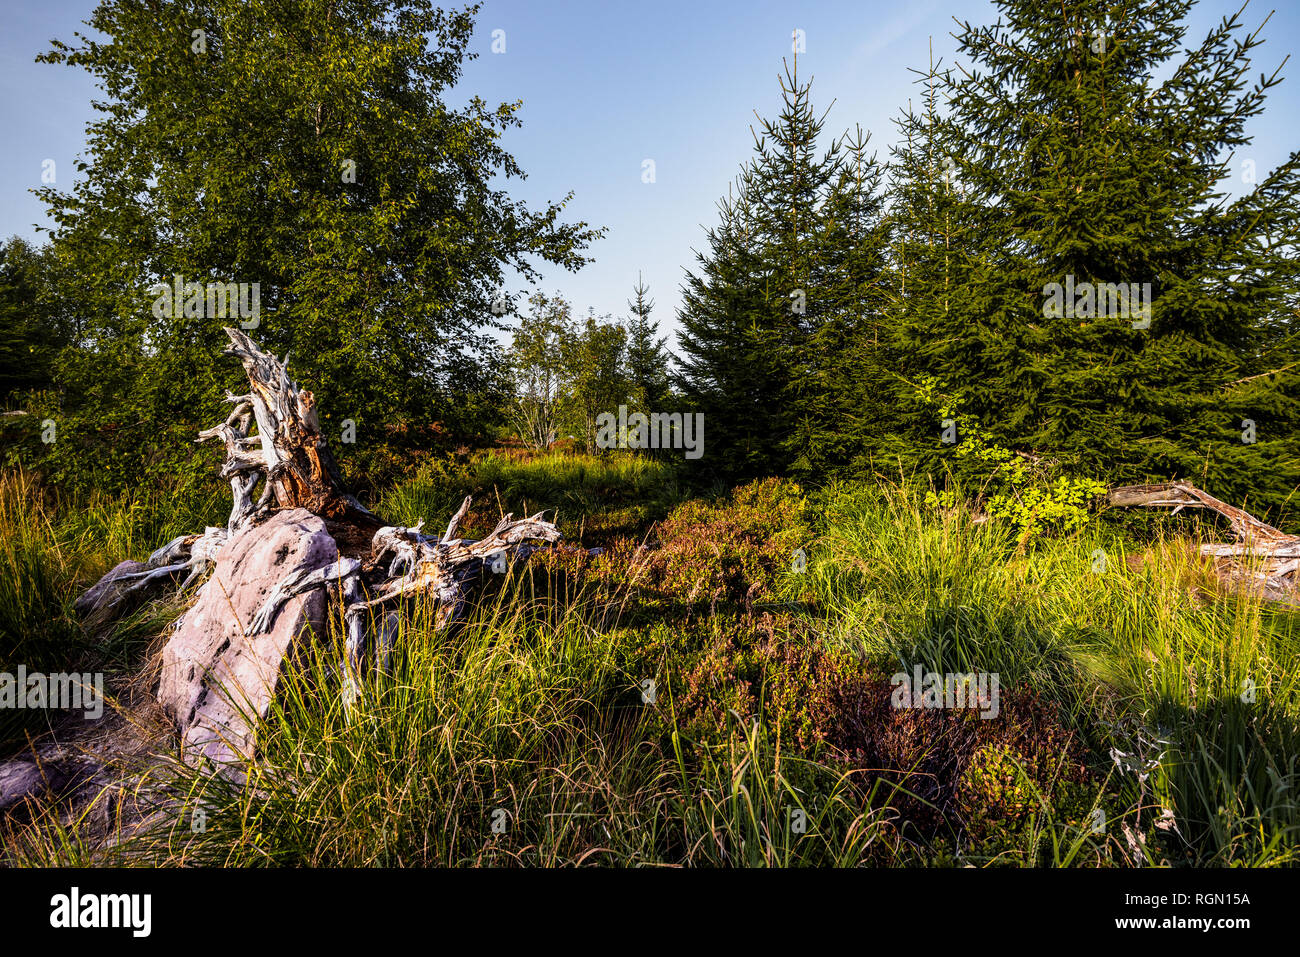 sandstone and landscape of untouched windthrow habitat, Northern Black Forest, Germany Stock Photo